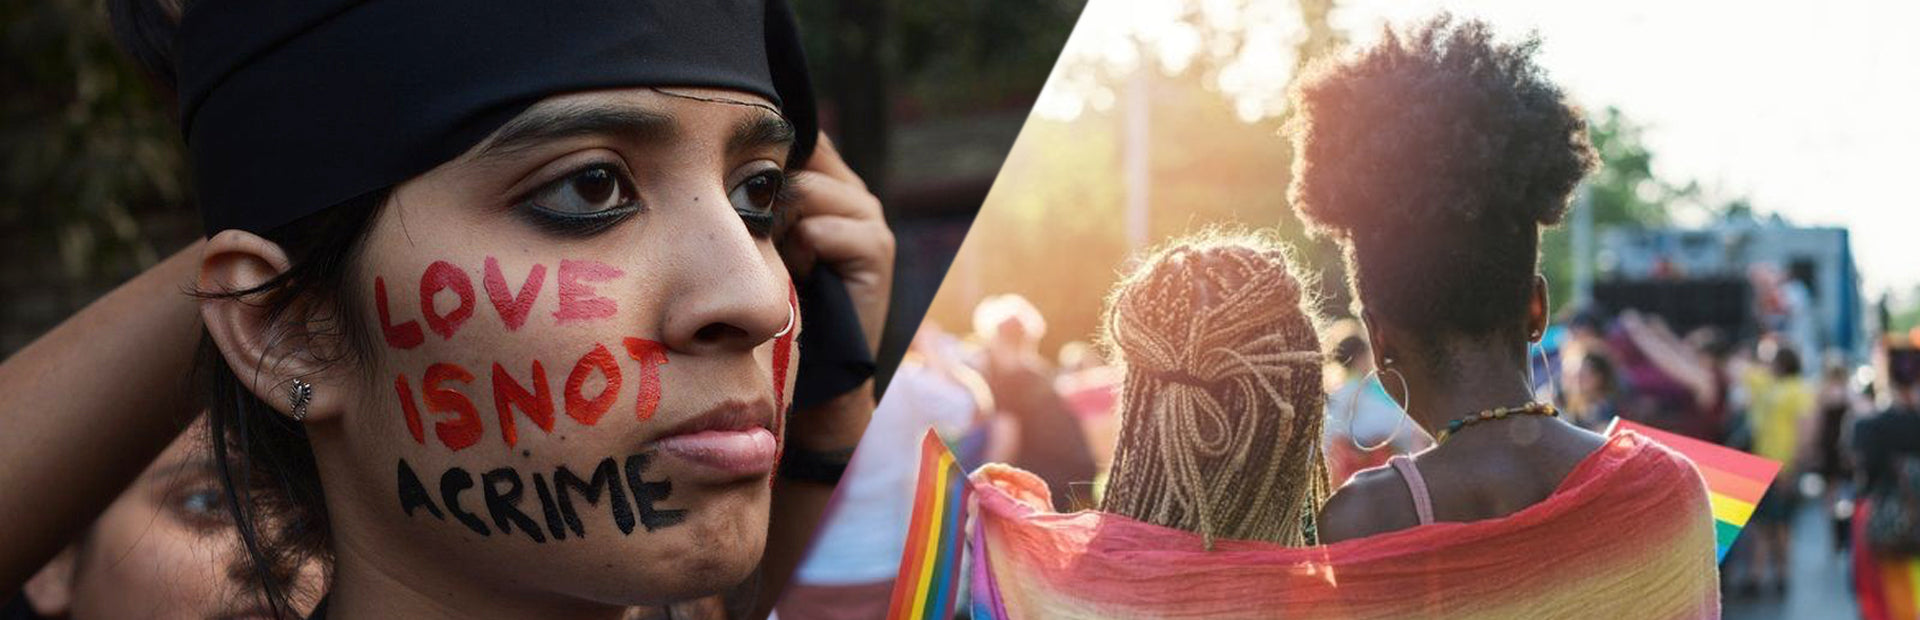 pride 2021 love is not a crime gay & lesbian